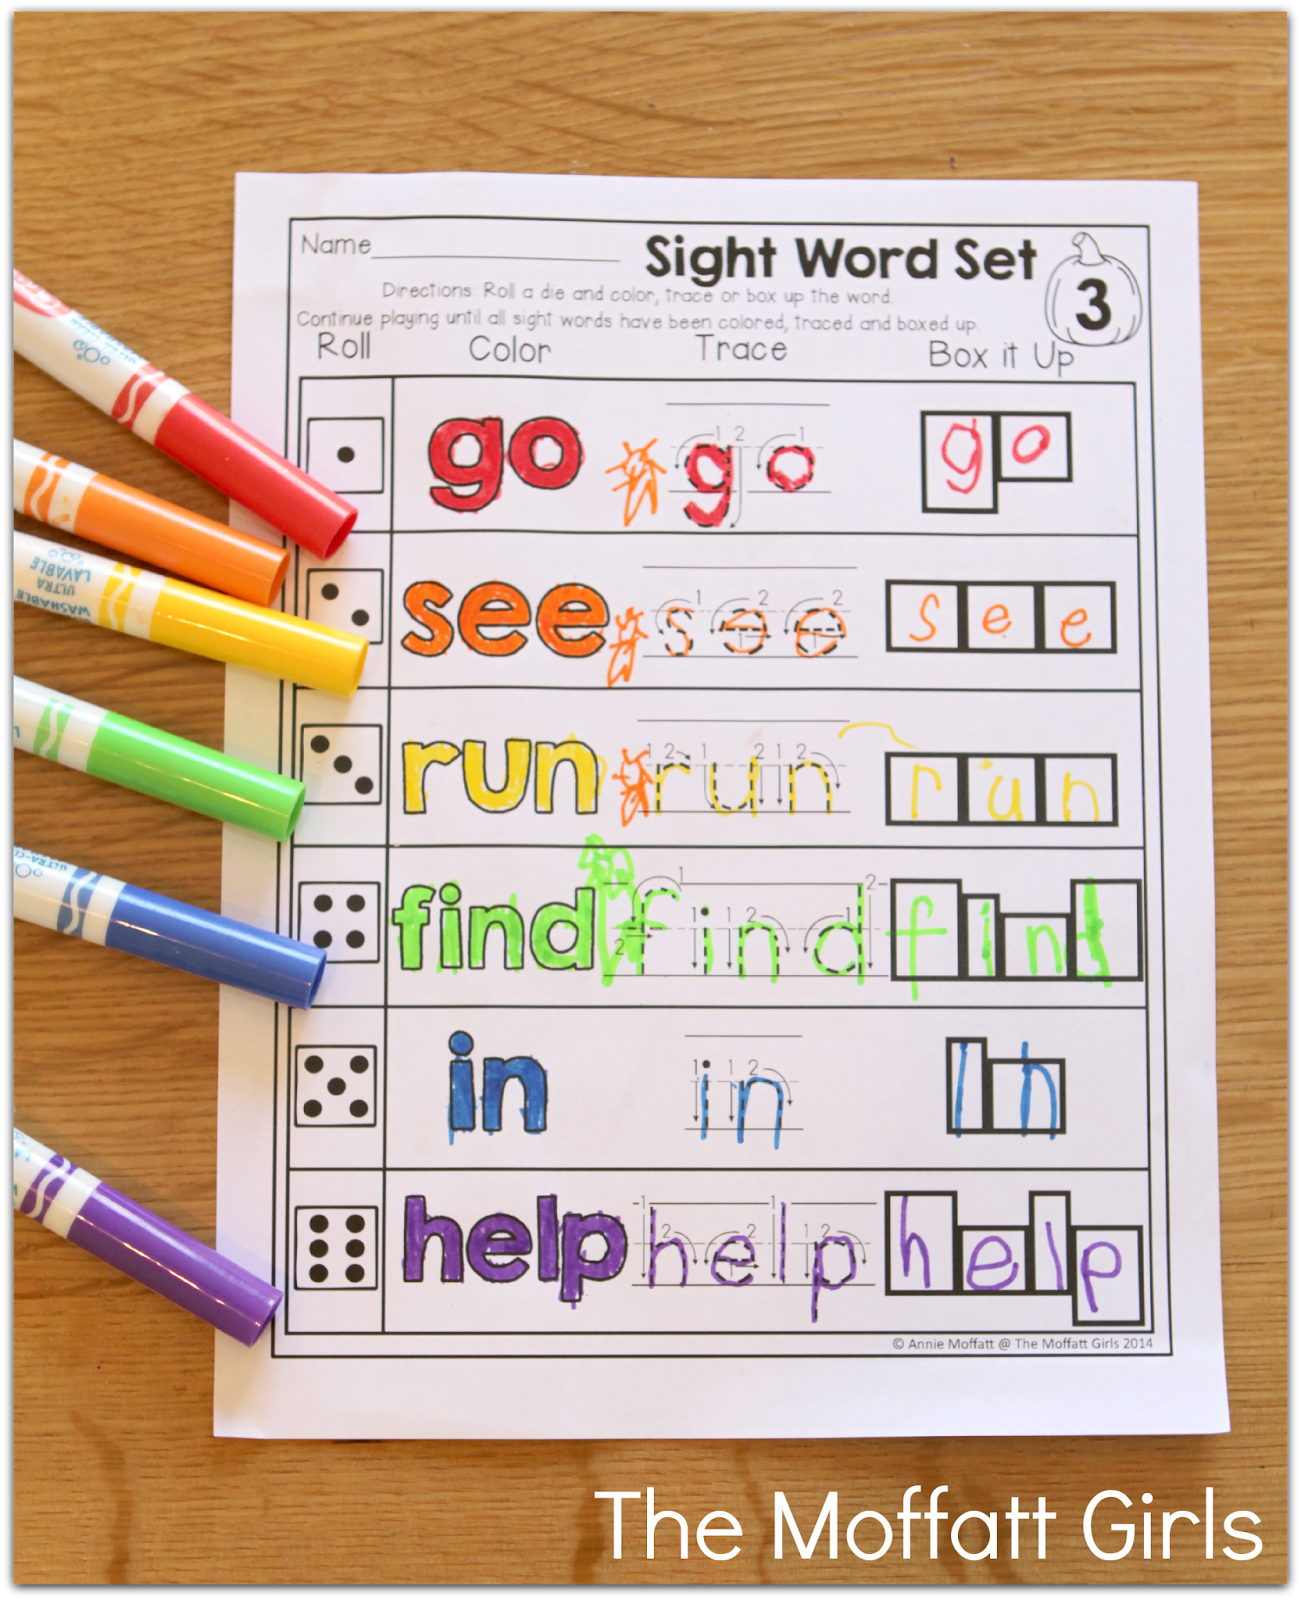 Sight Words Roll A Read A Word Color Trace Or Box It Up So Many Fun And Hands On